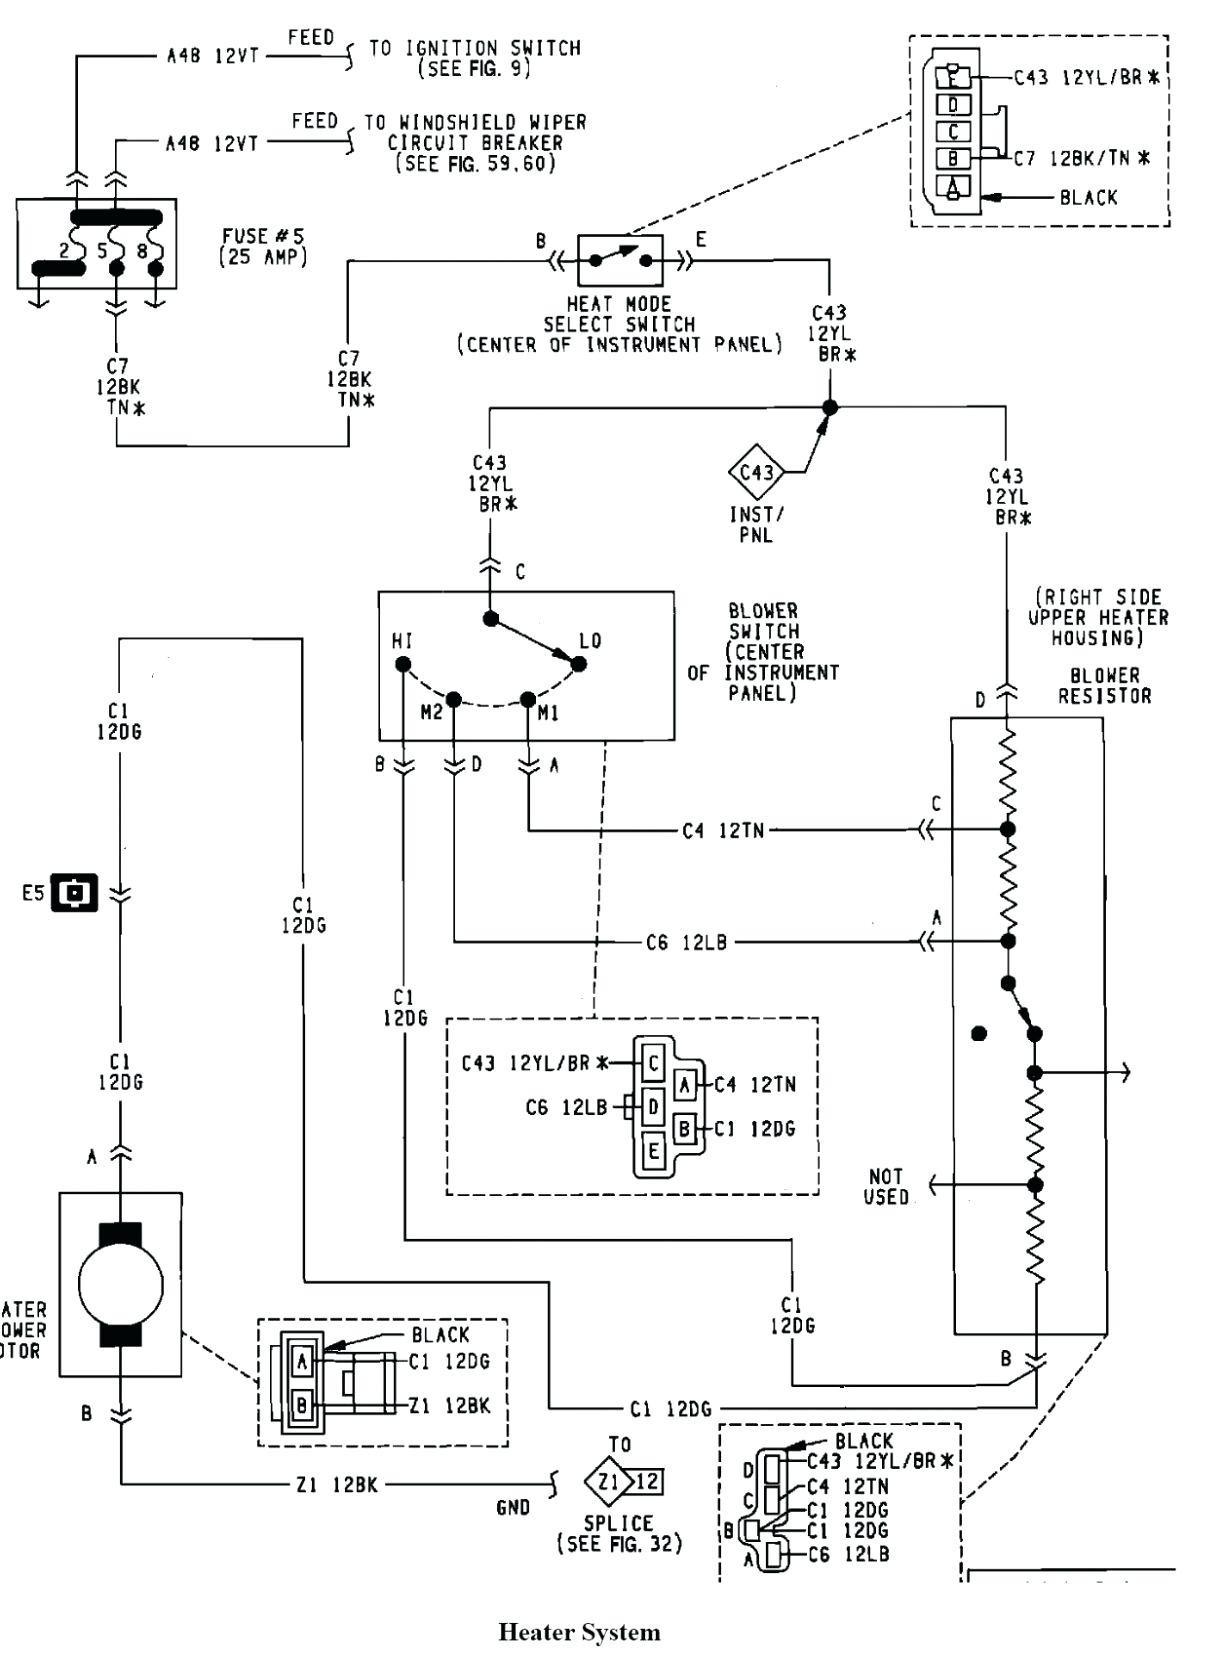 98 Jeep Wrangler Headlight Wiring Diagram - Wiring Diagram ...